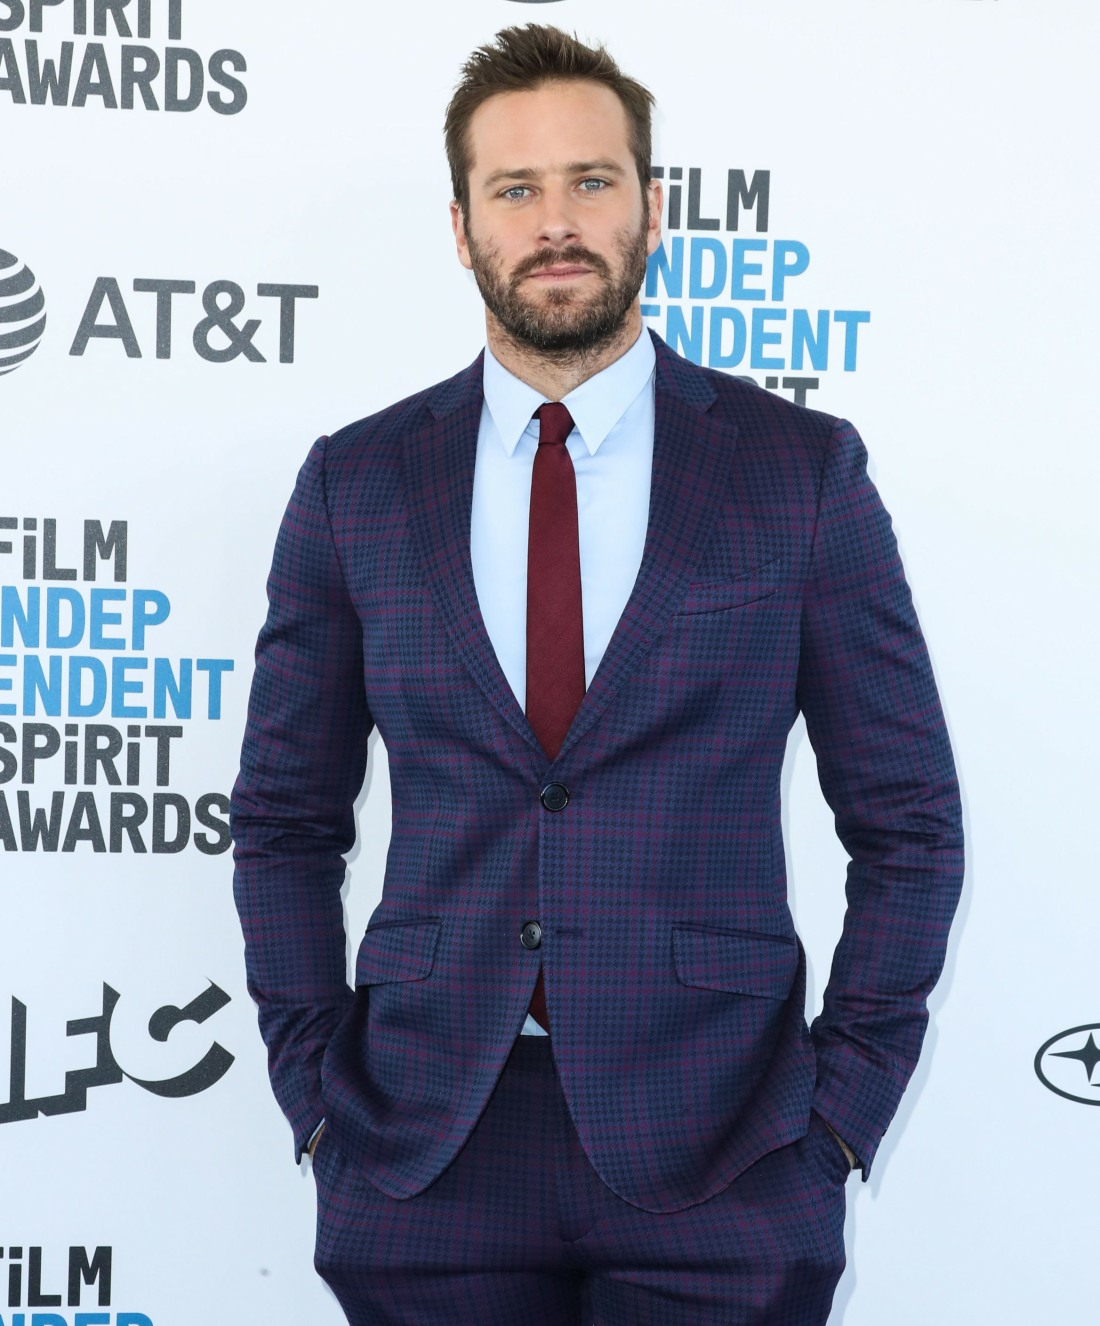 2019 Film Independent Spirit Awards